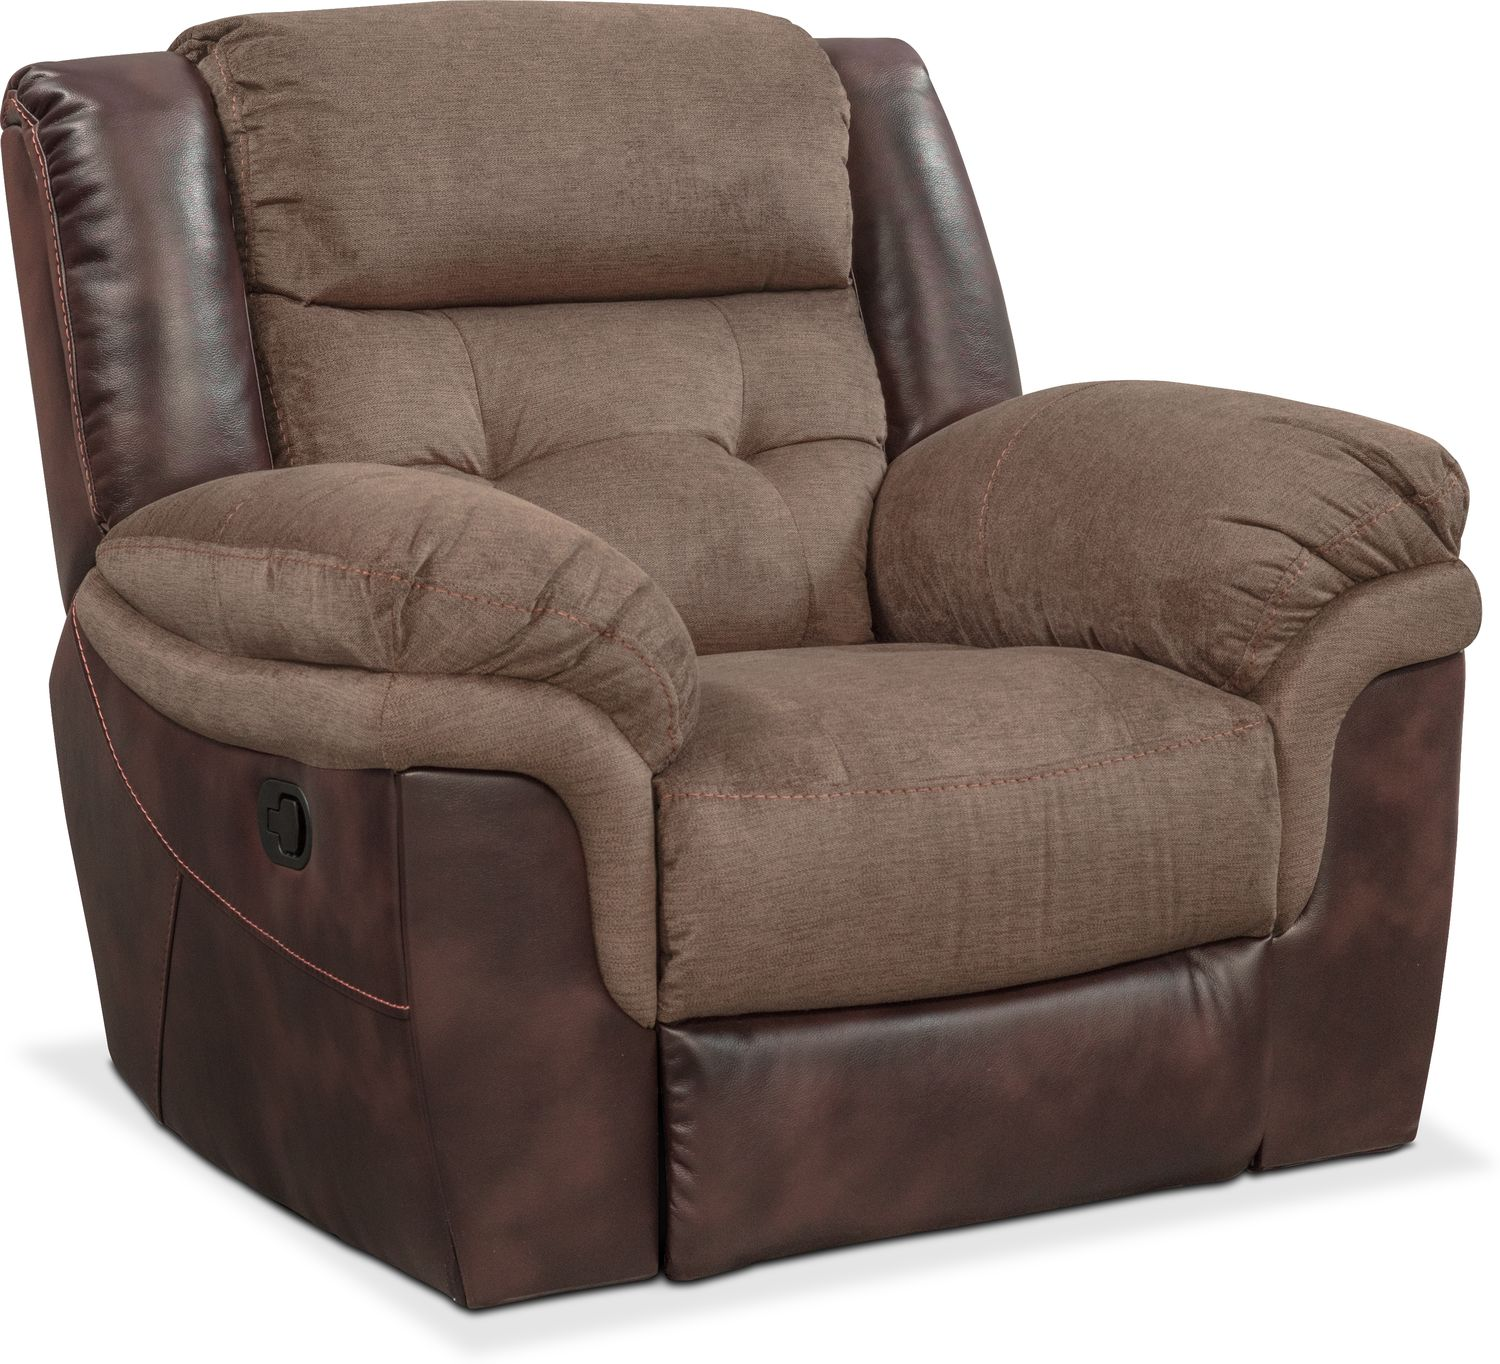 Tacoma Manual Reclining Sofa Loveseat And Glider Recliner